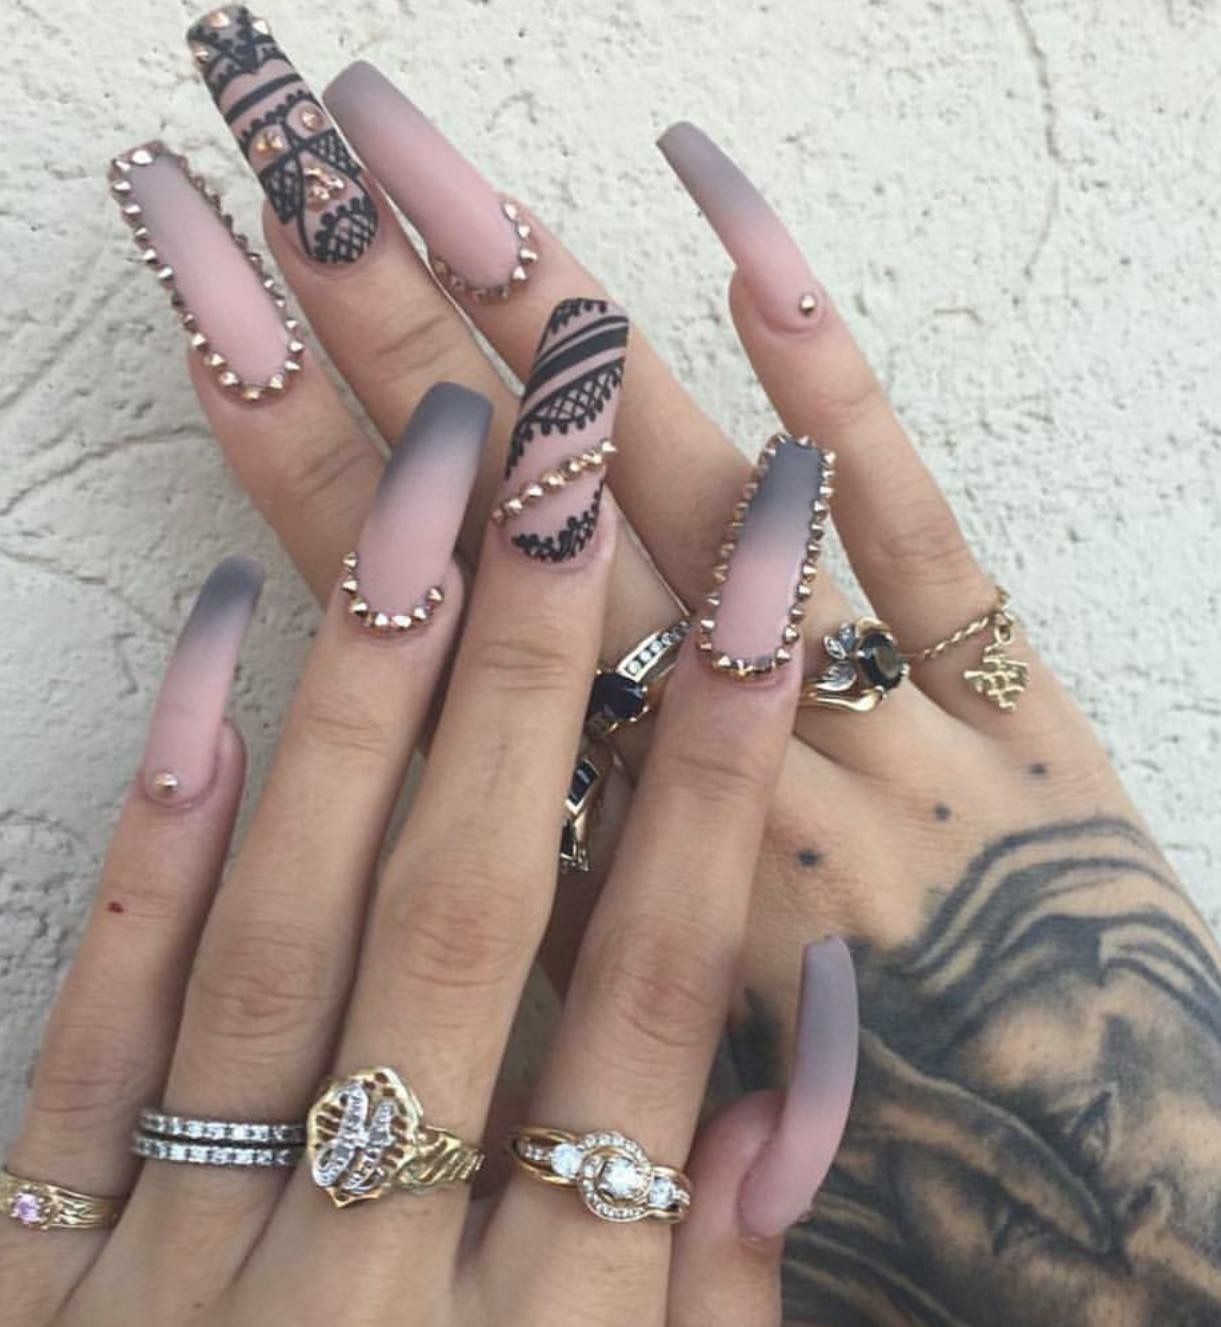 These are nice | nails | Pinterest | Nice, Nail nail and Makeup